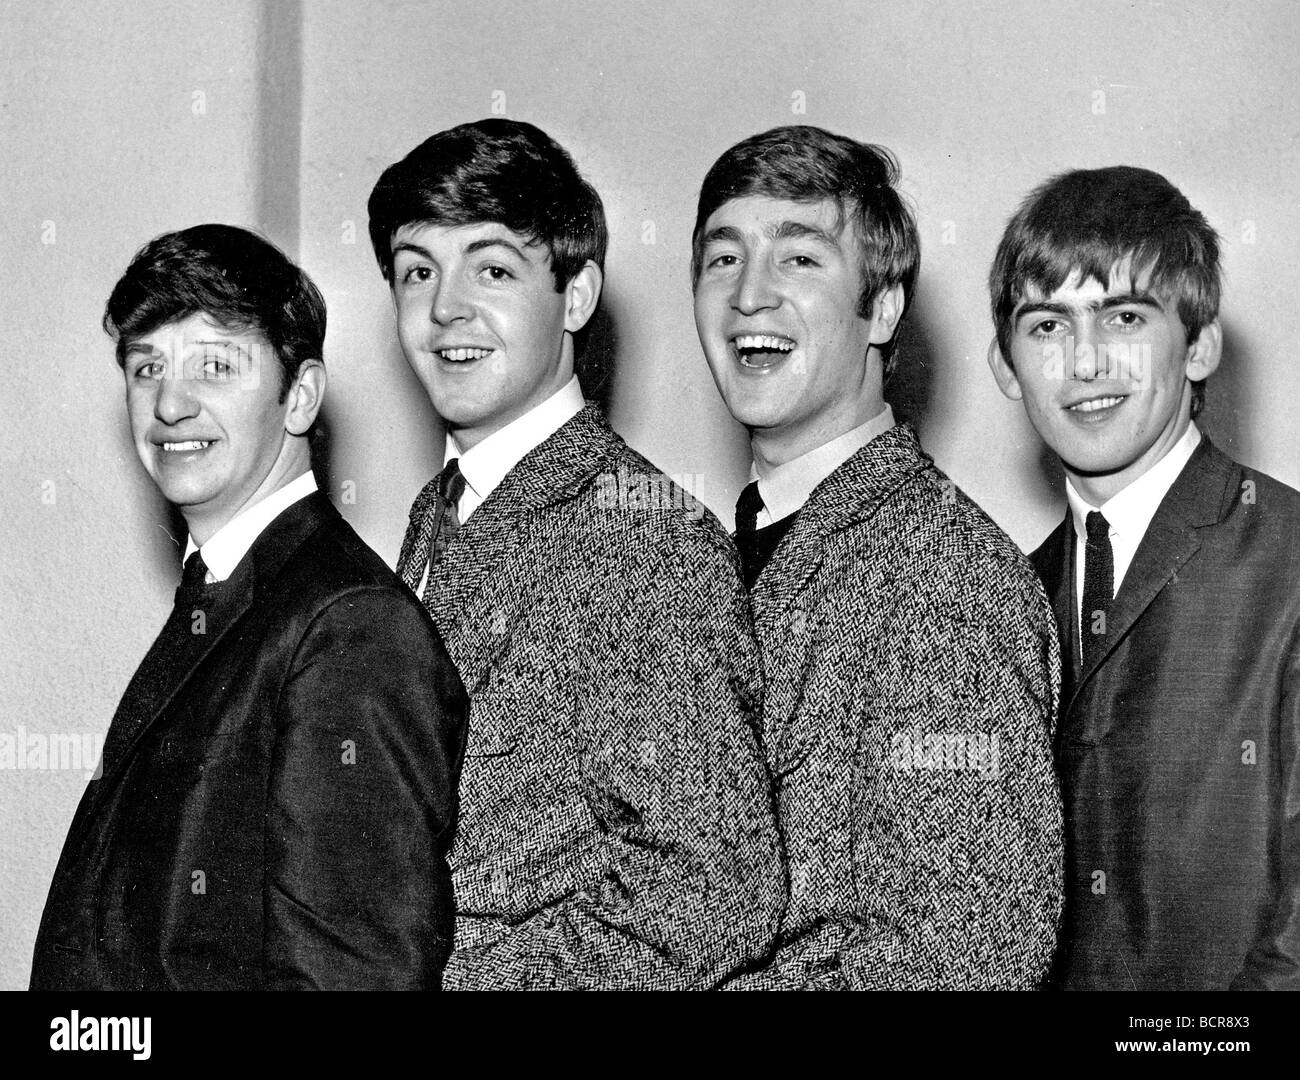 BEATLES In 1962 From Left Ringo Starr Paul McCartney John Lennon And George Harrison